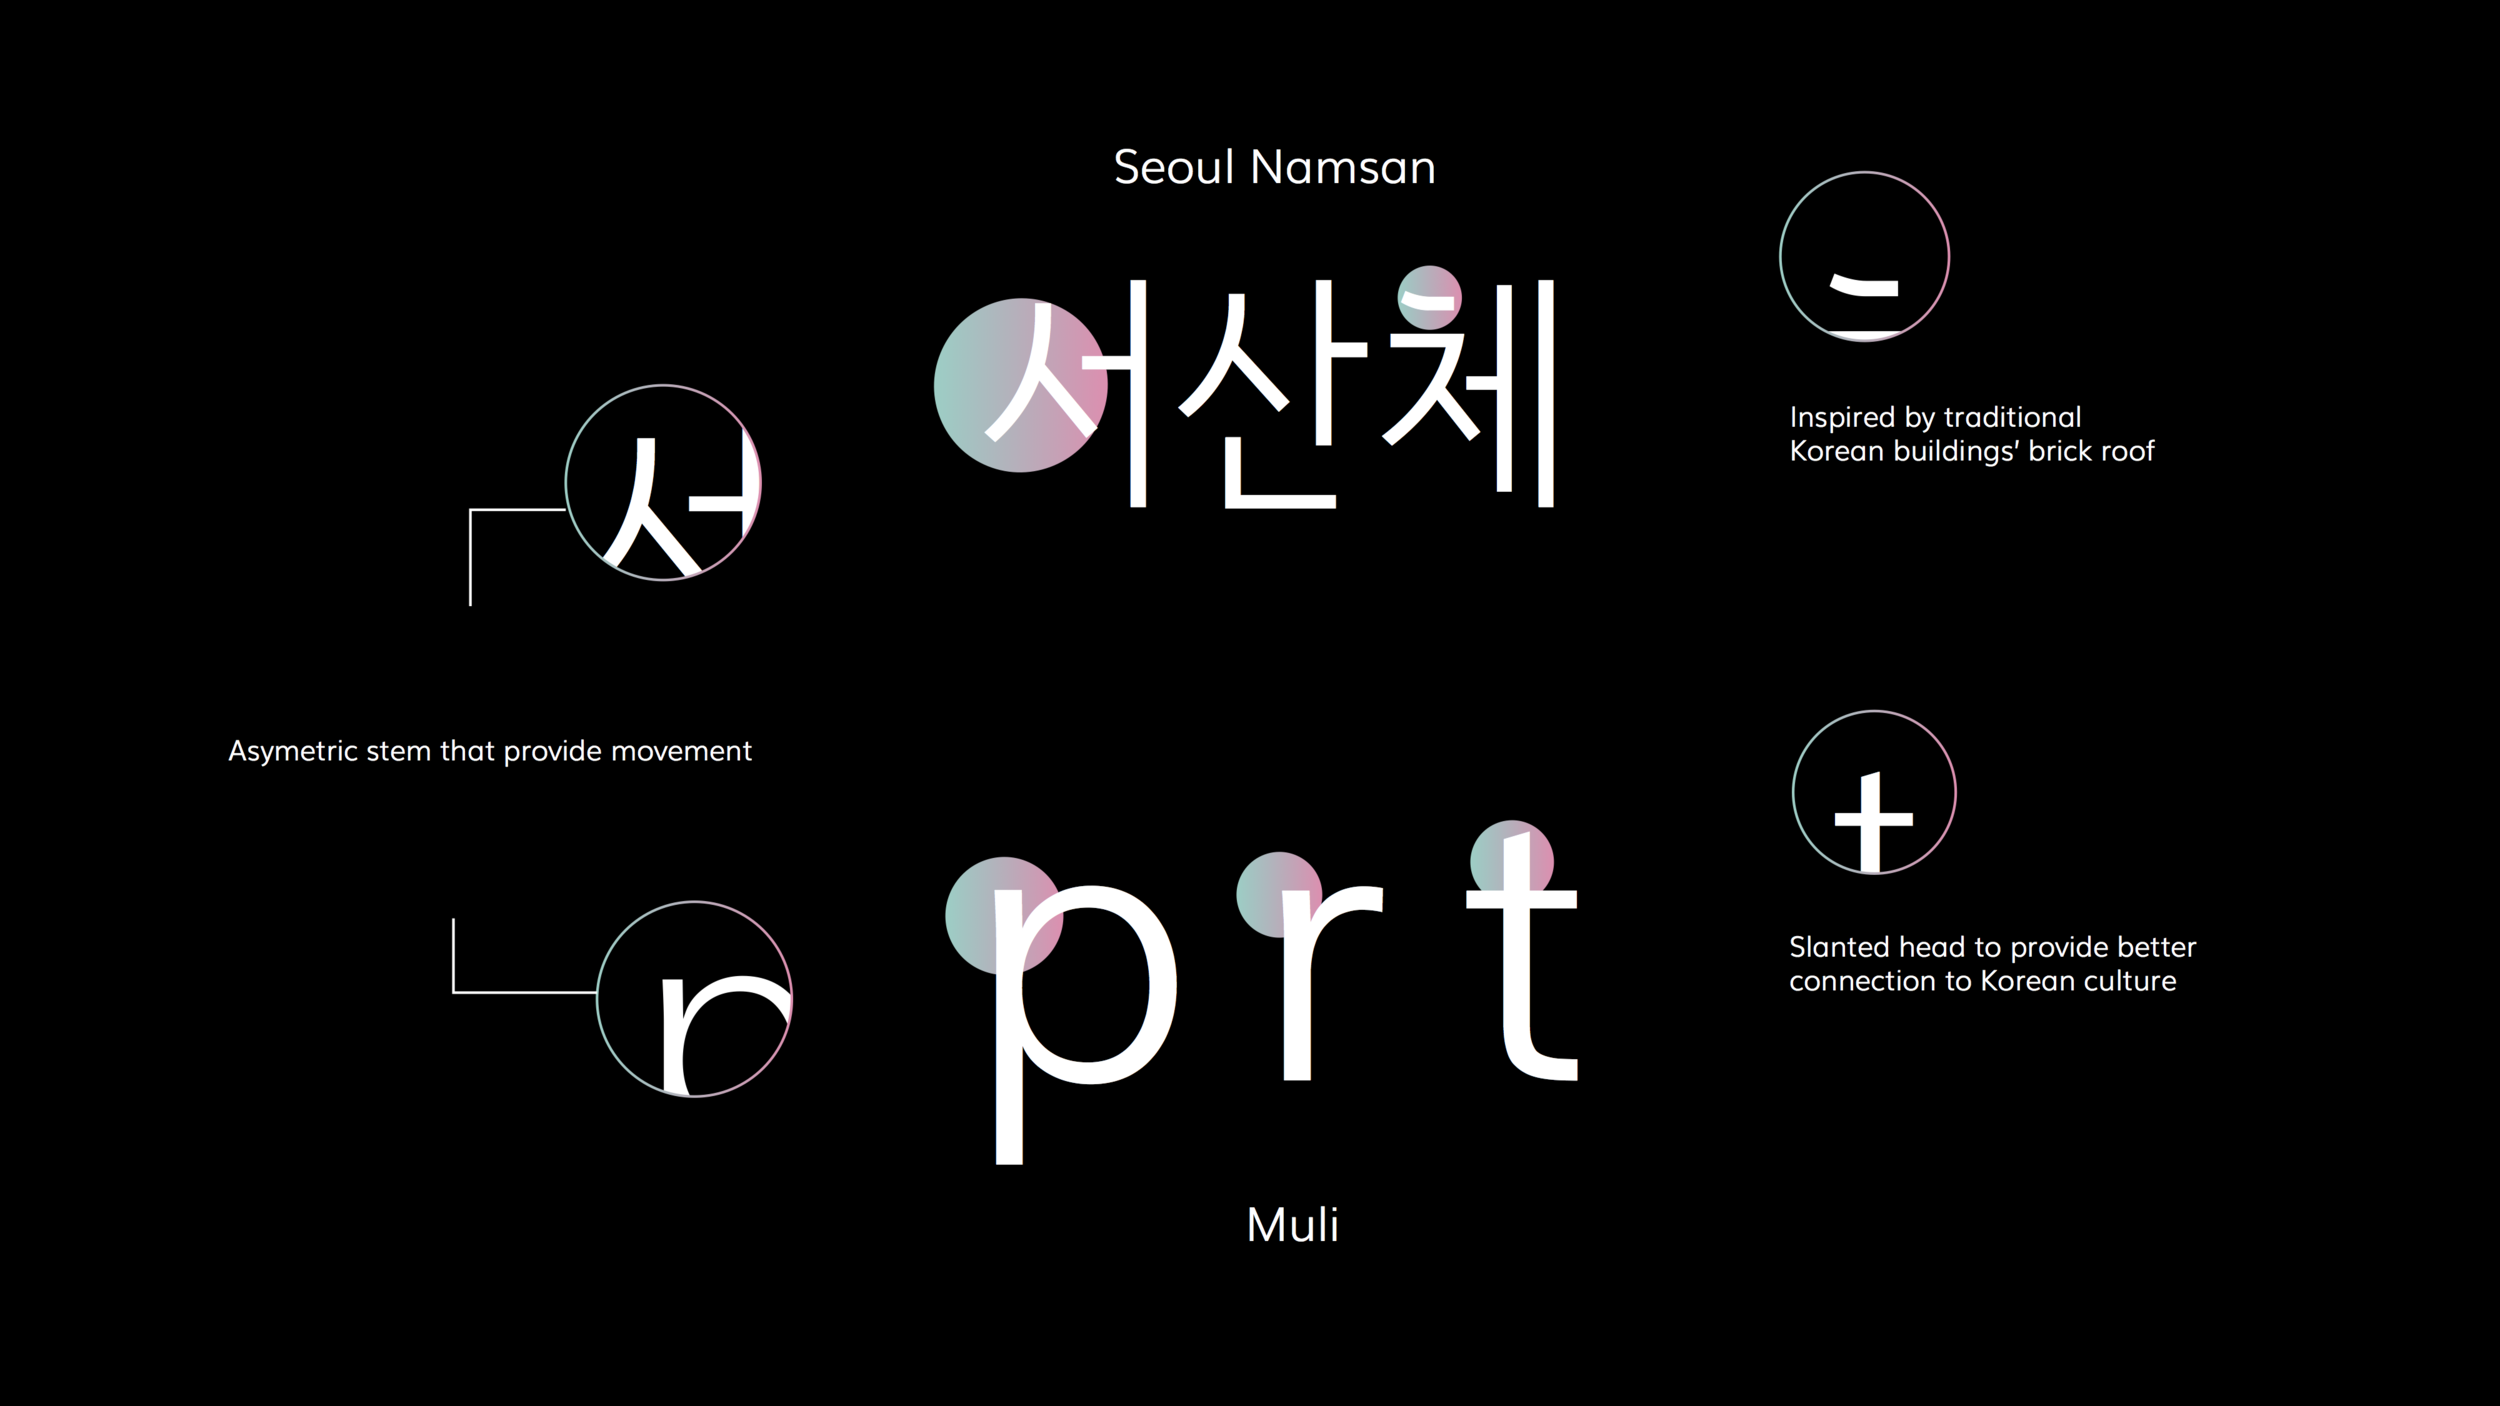 """typography - Selecting the font for the slide deck is crucial and a good choice of font will be able to relate the culture behind Seoul and the transition of Seoul. I chose the font Muli because there are multiple similarity between this font and the most used Korean font """"Seoul Namsan""""."""